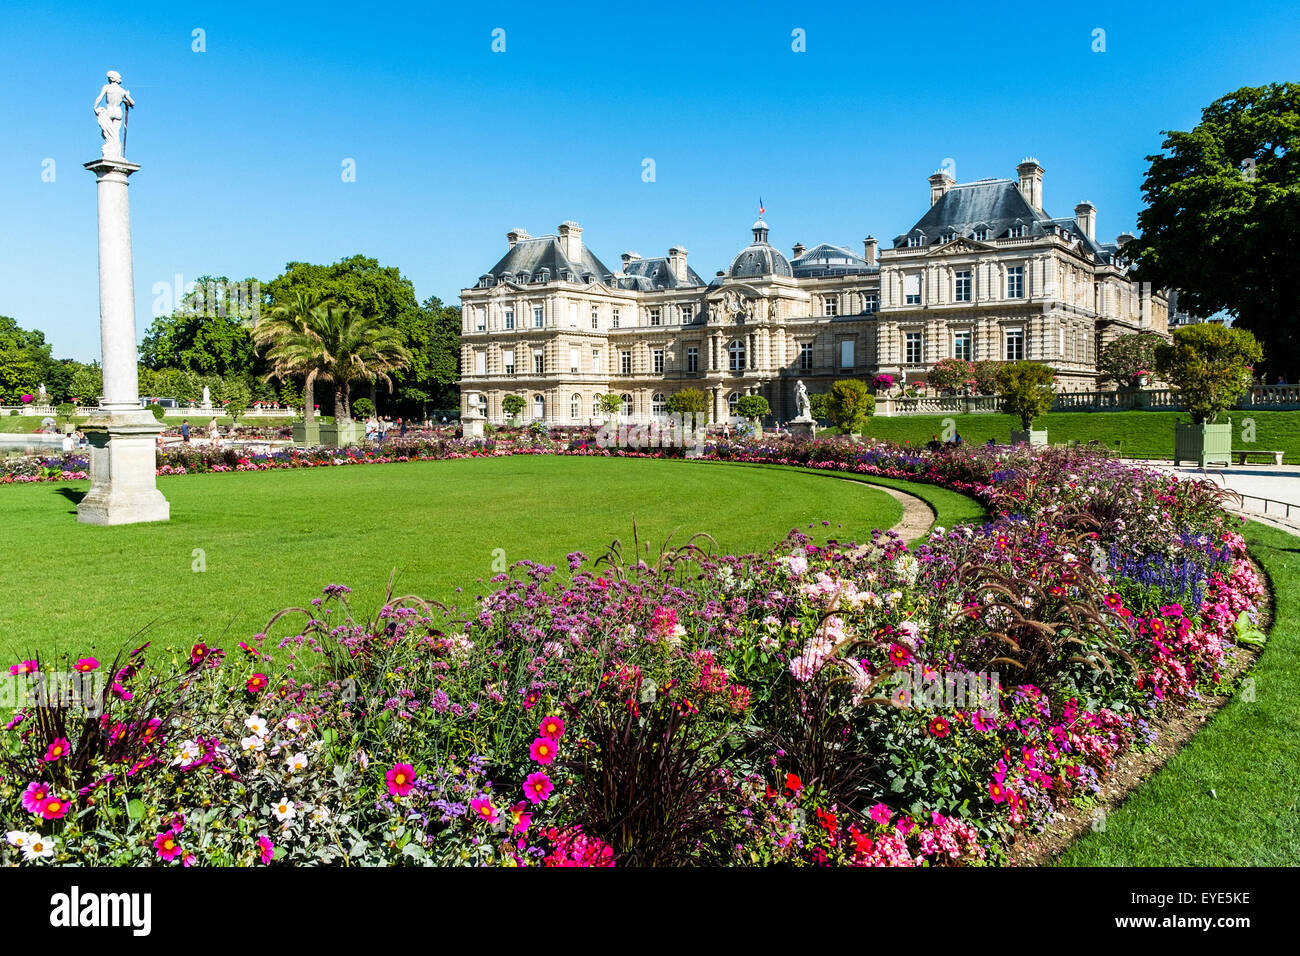 Le jardin du luxembourg gardens paris france stock photo Le jardin francais